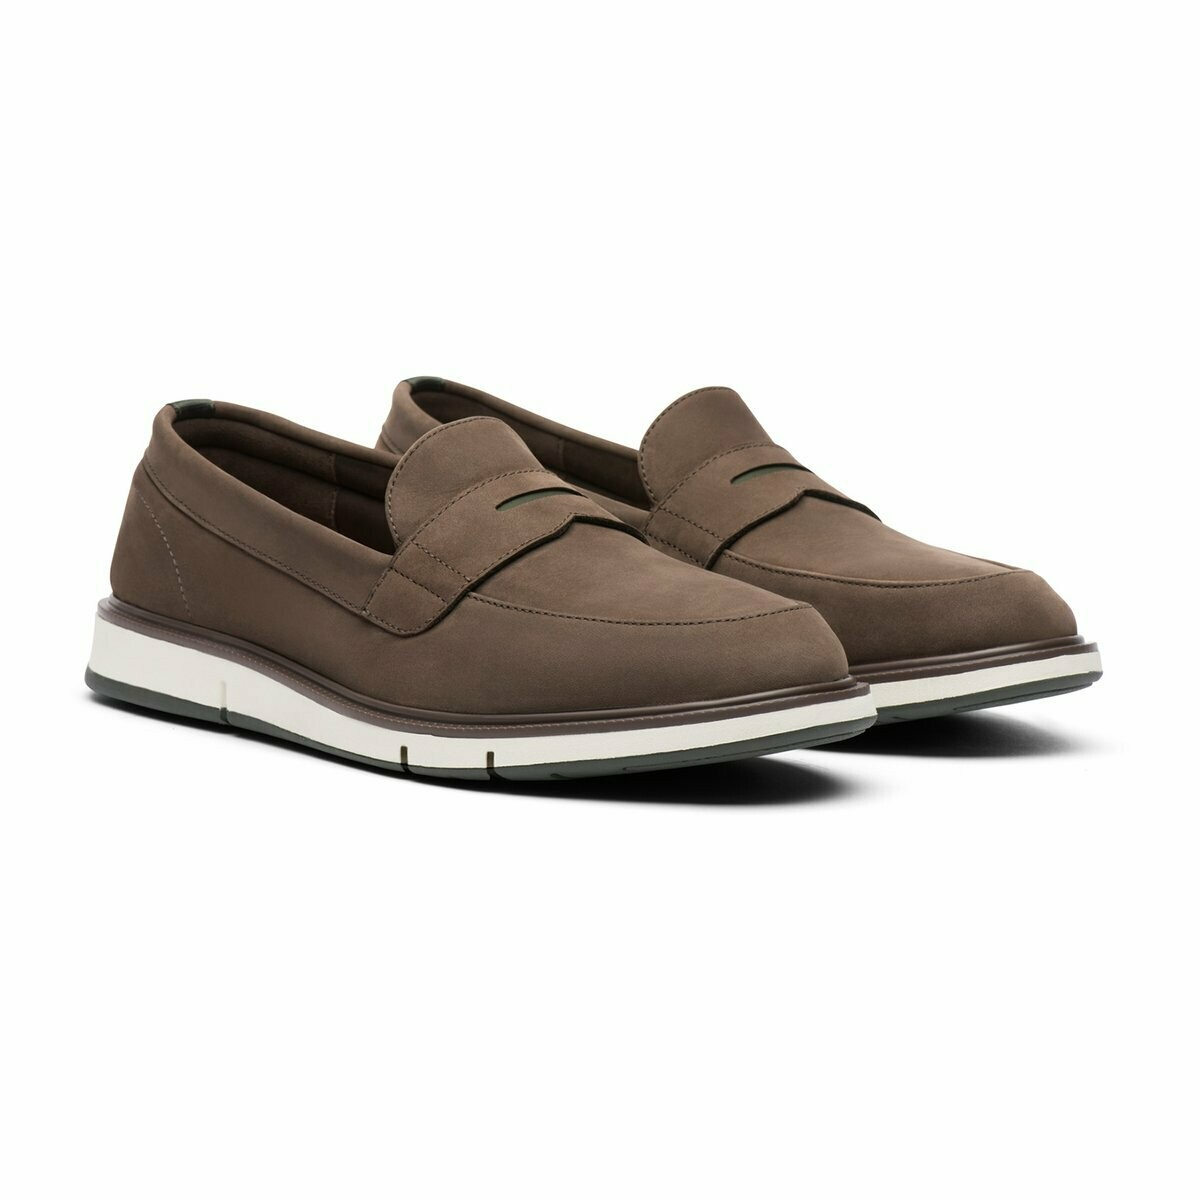 Swims Motion Loafers in Penny Brown